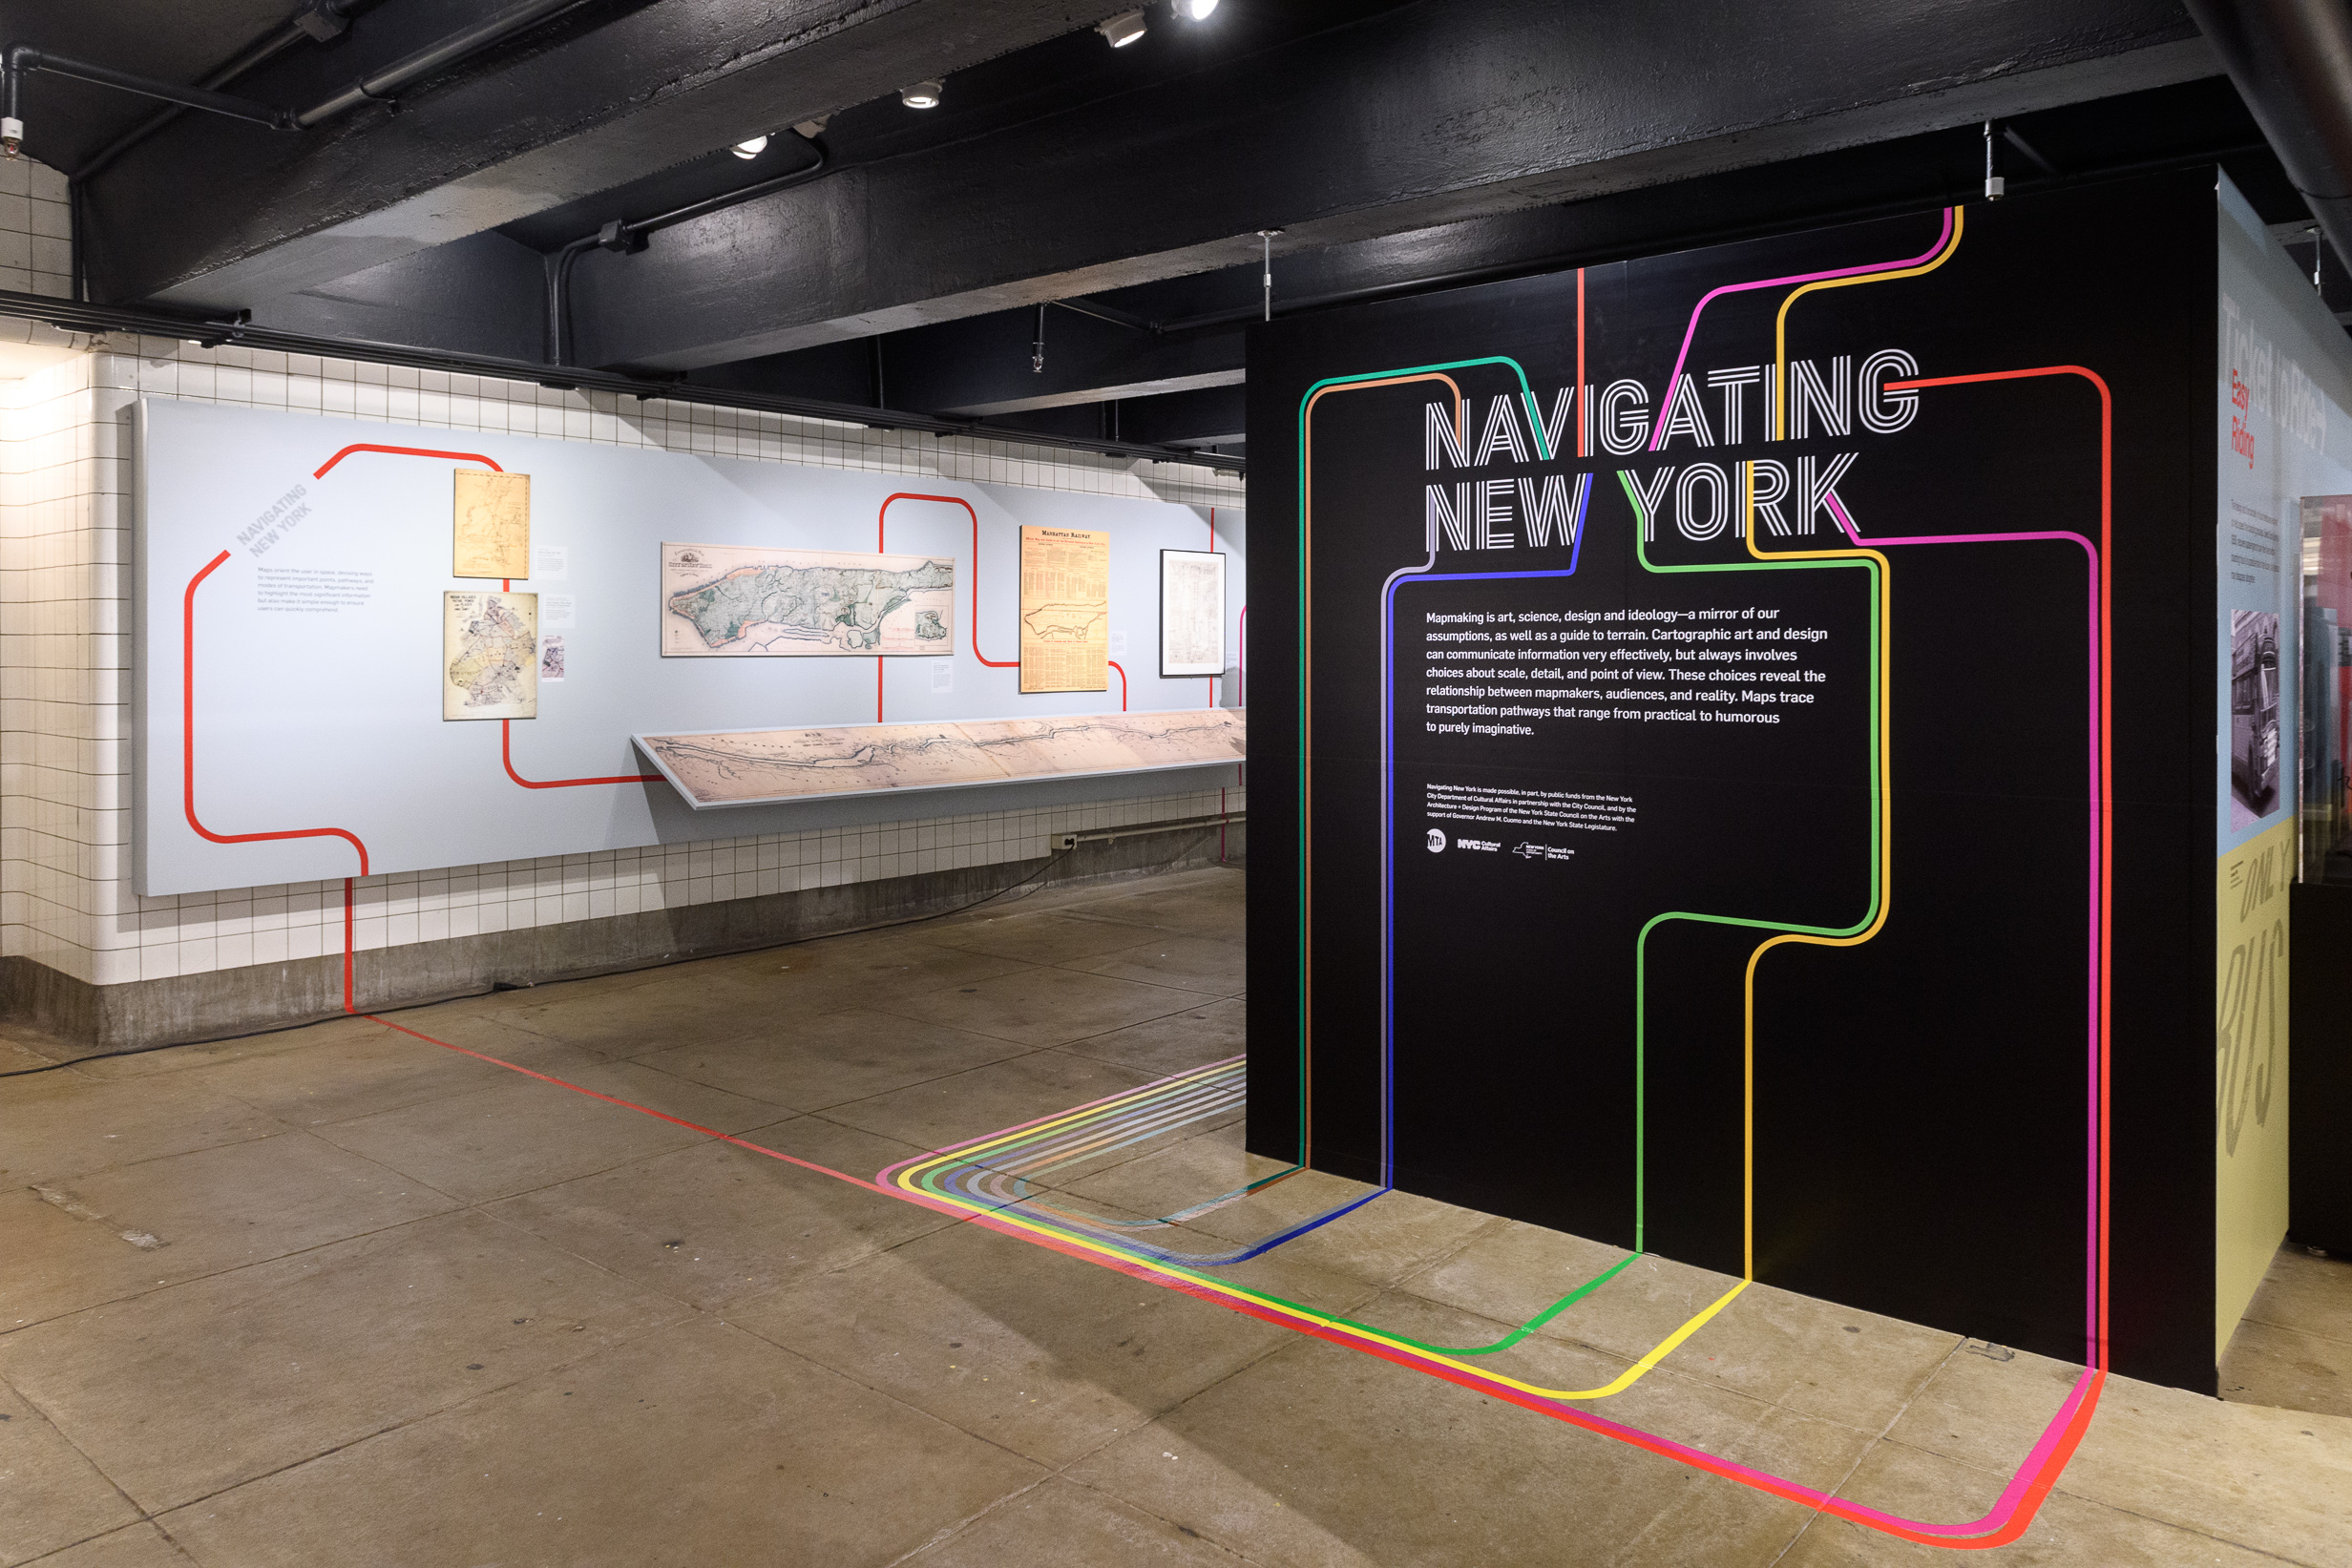 NYC subway map's history and influence examined in new museum ... on